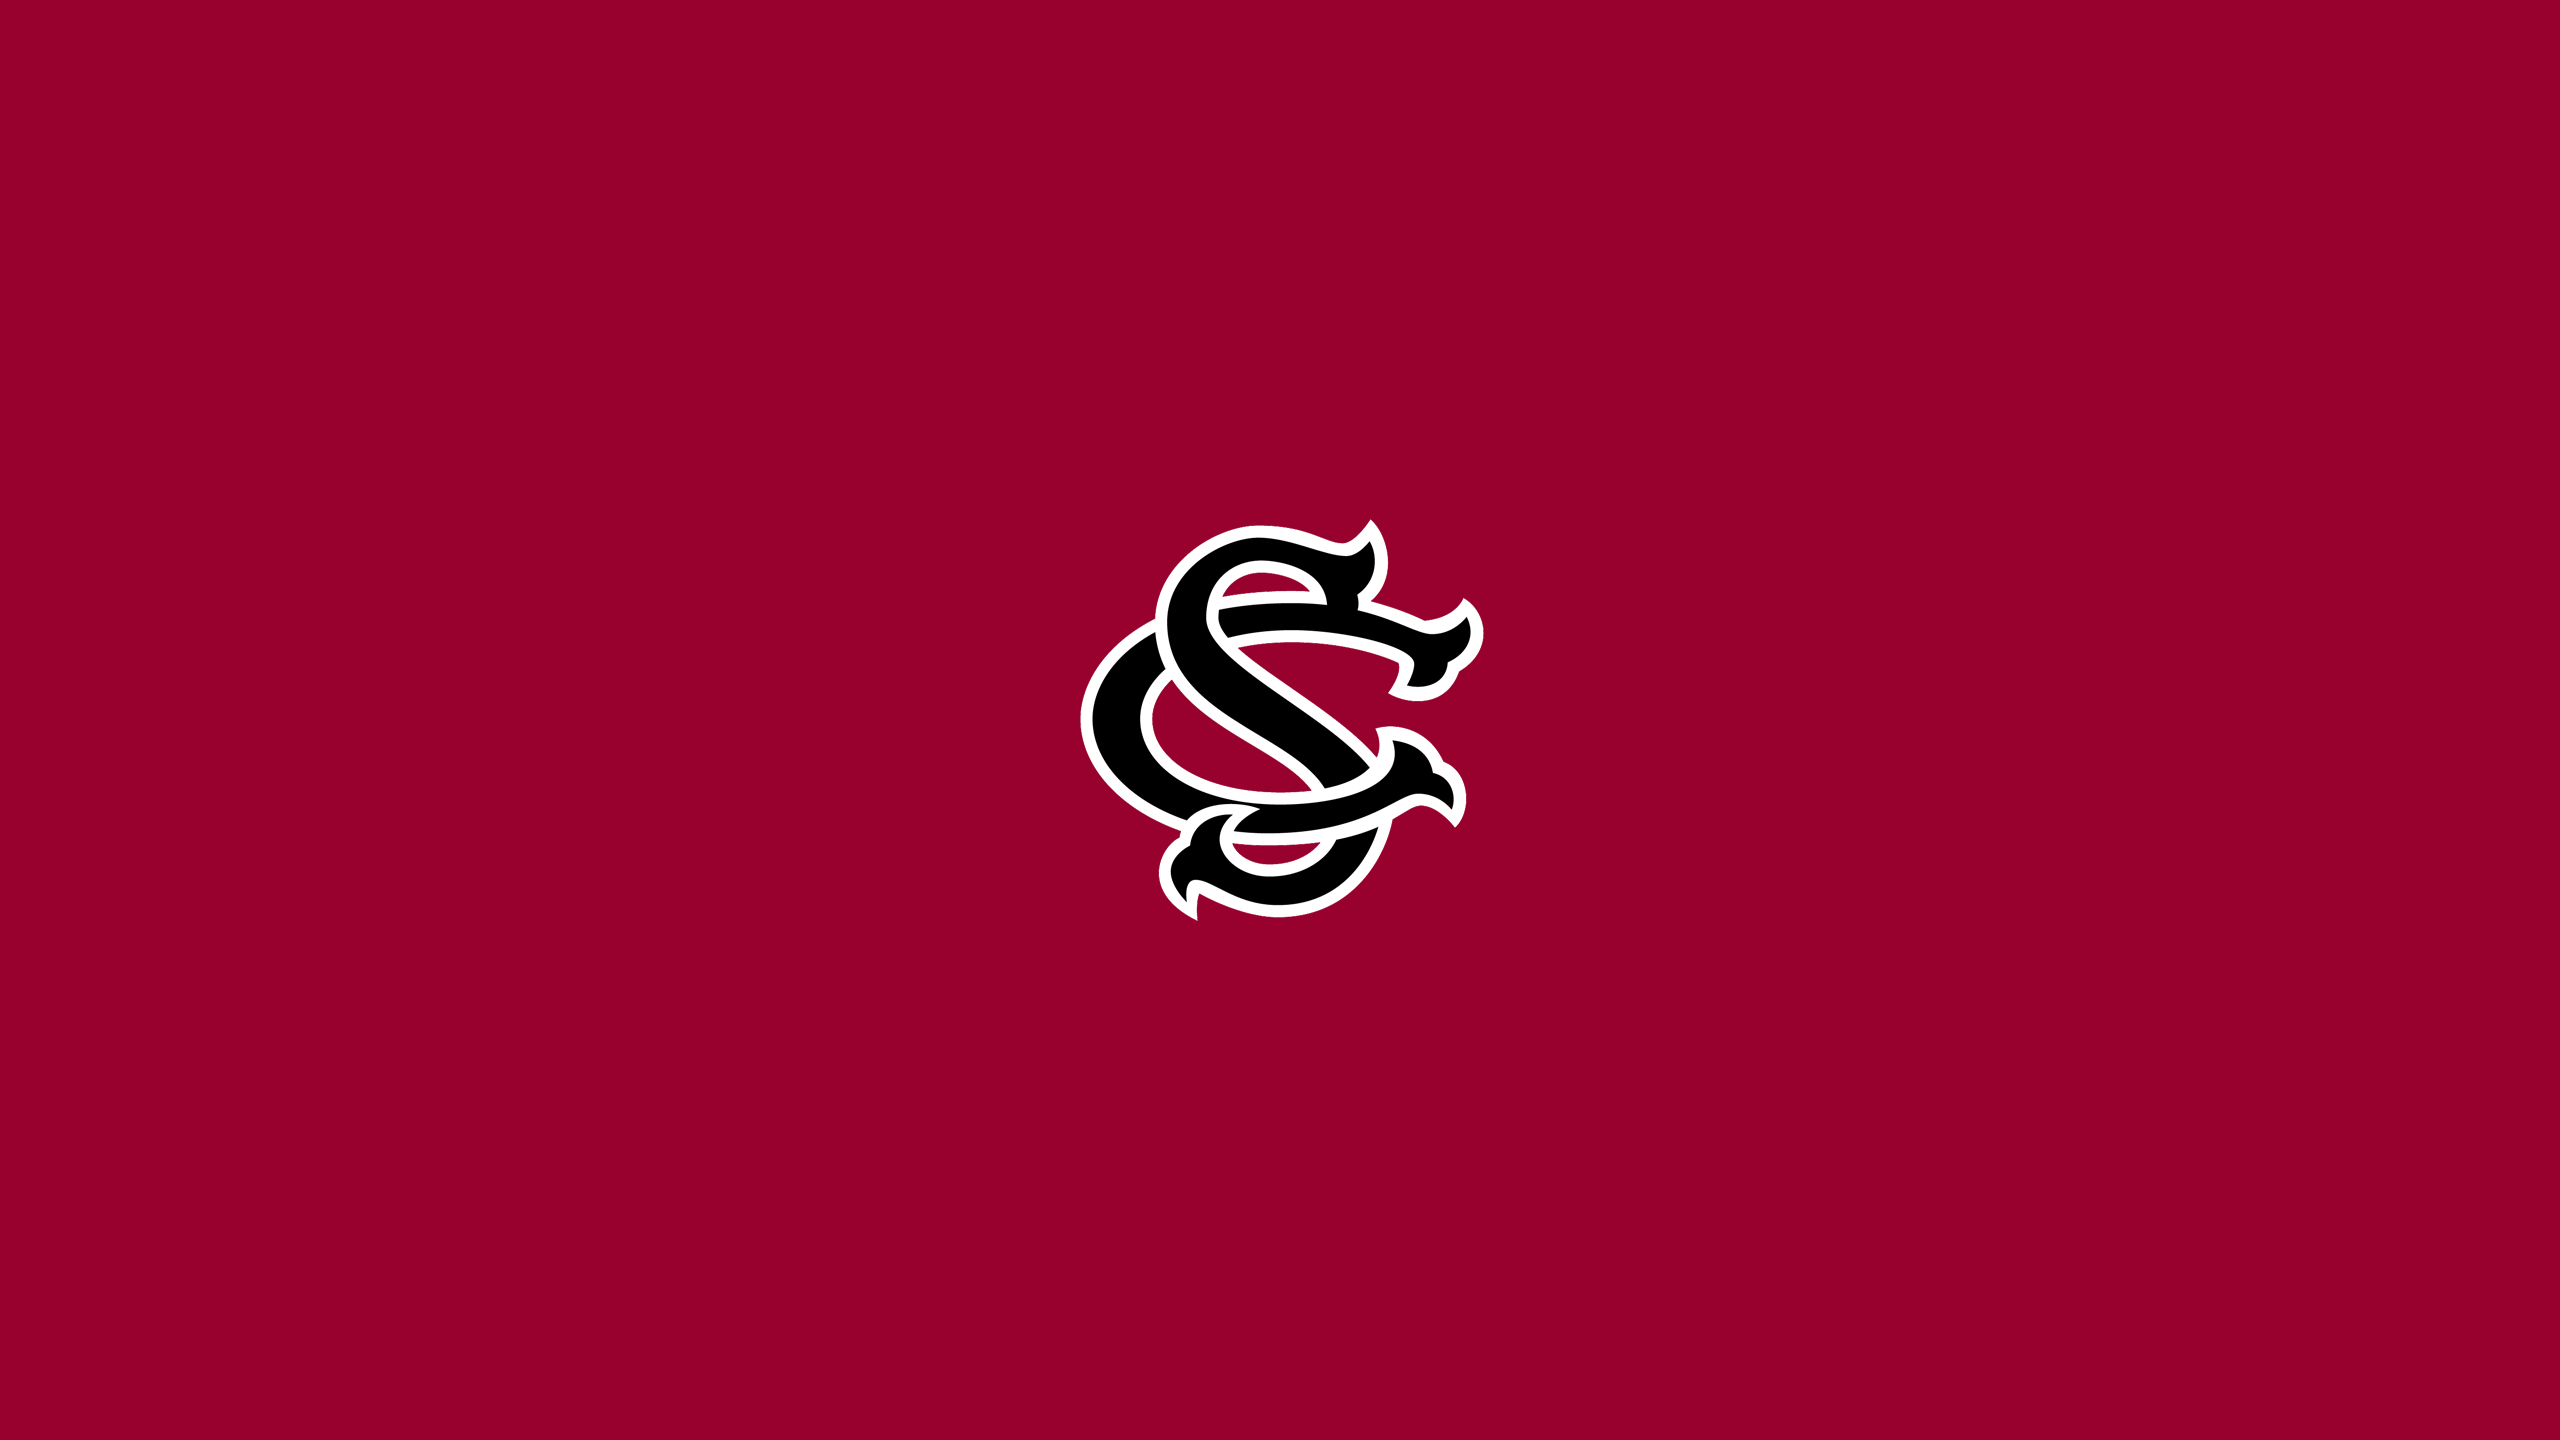 University of South Carolina Gamecocks (Baseball)